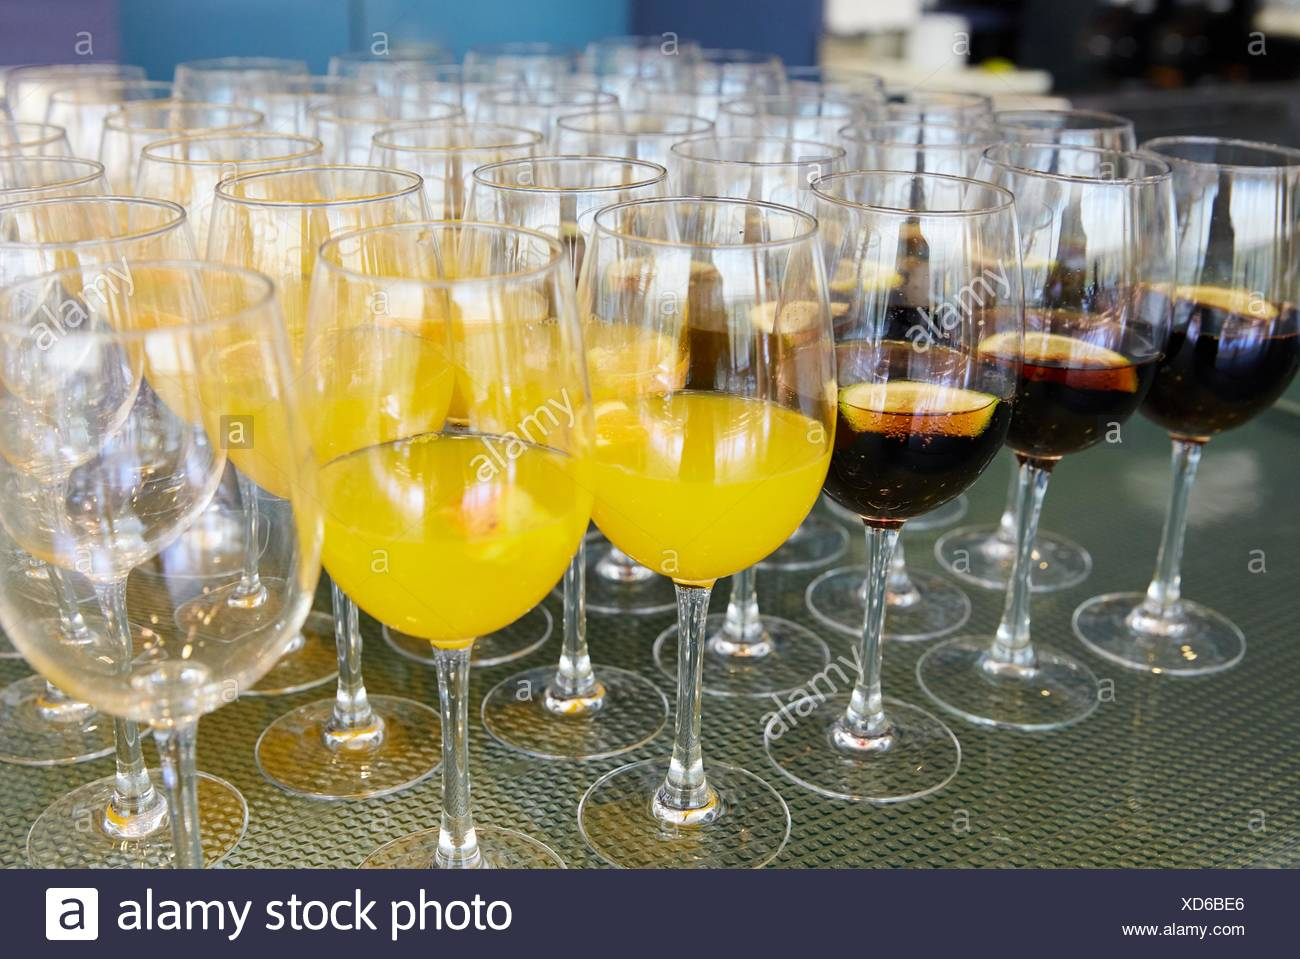 Beverages, soft drinks, Catering congress - Stock Image